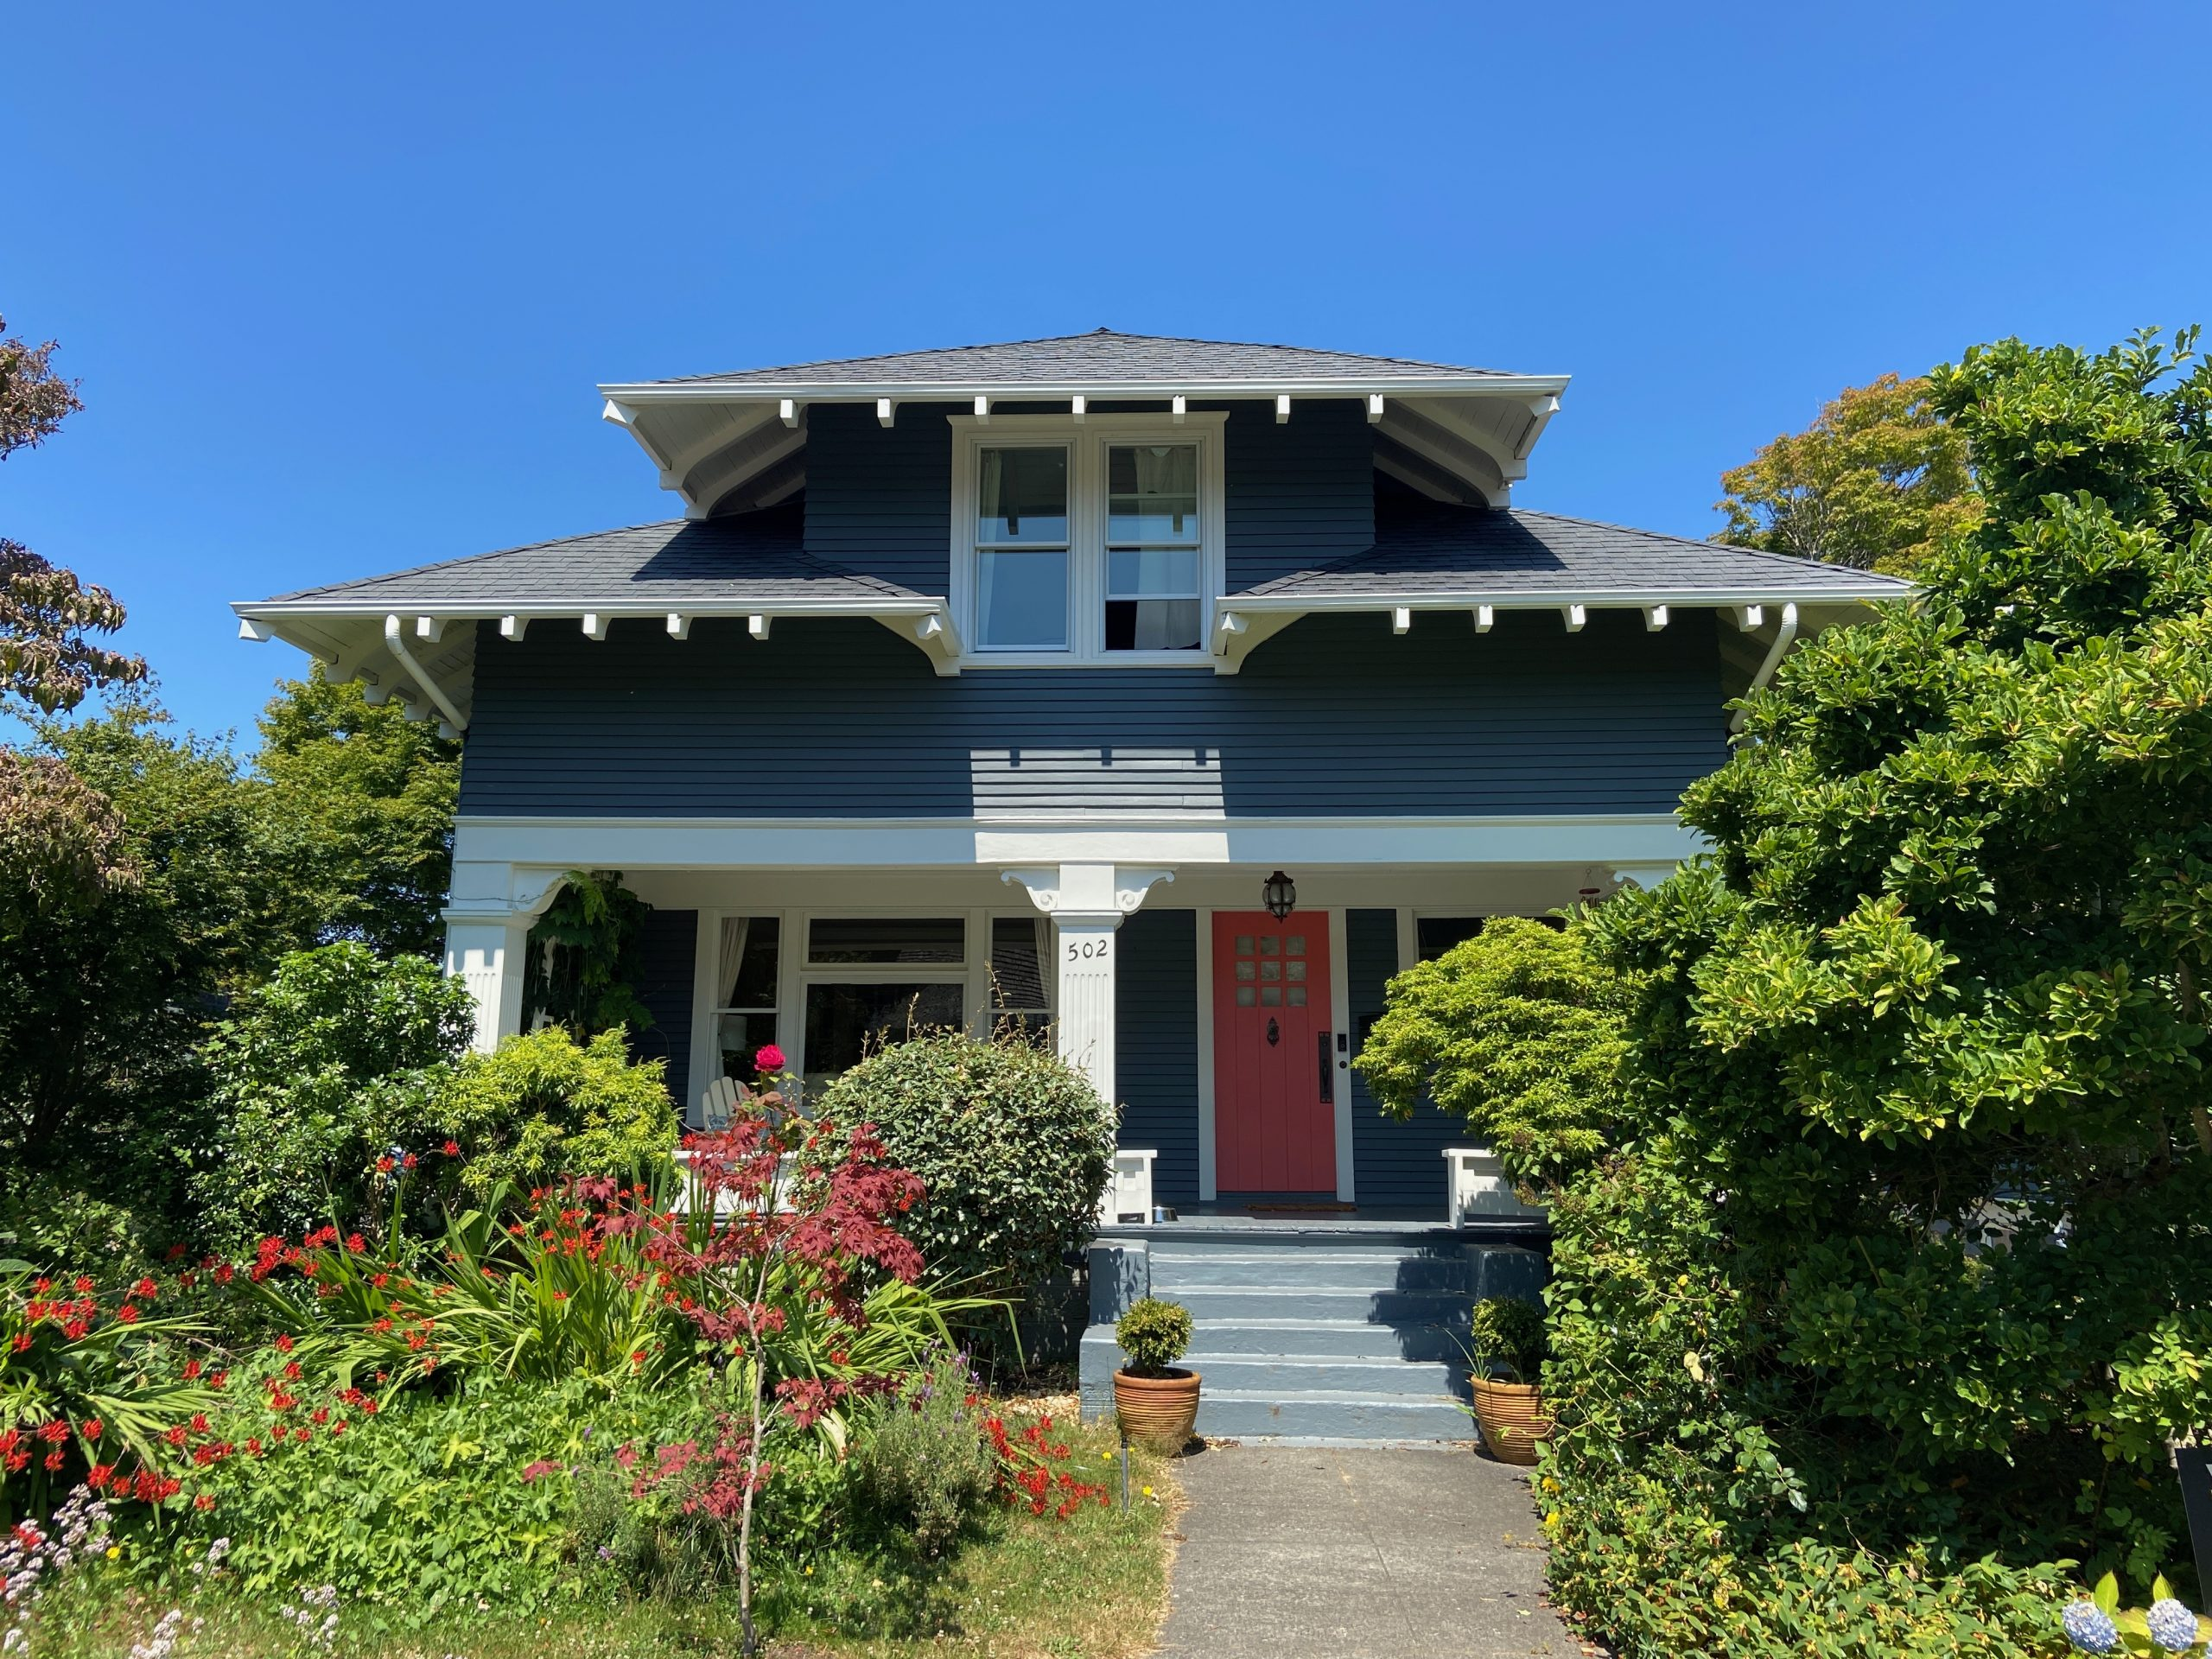 Benjamin Moore Stormy Monday Exterior Paint Color The Phinery